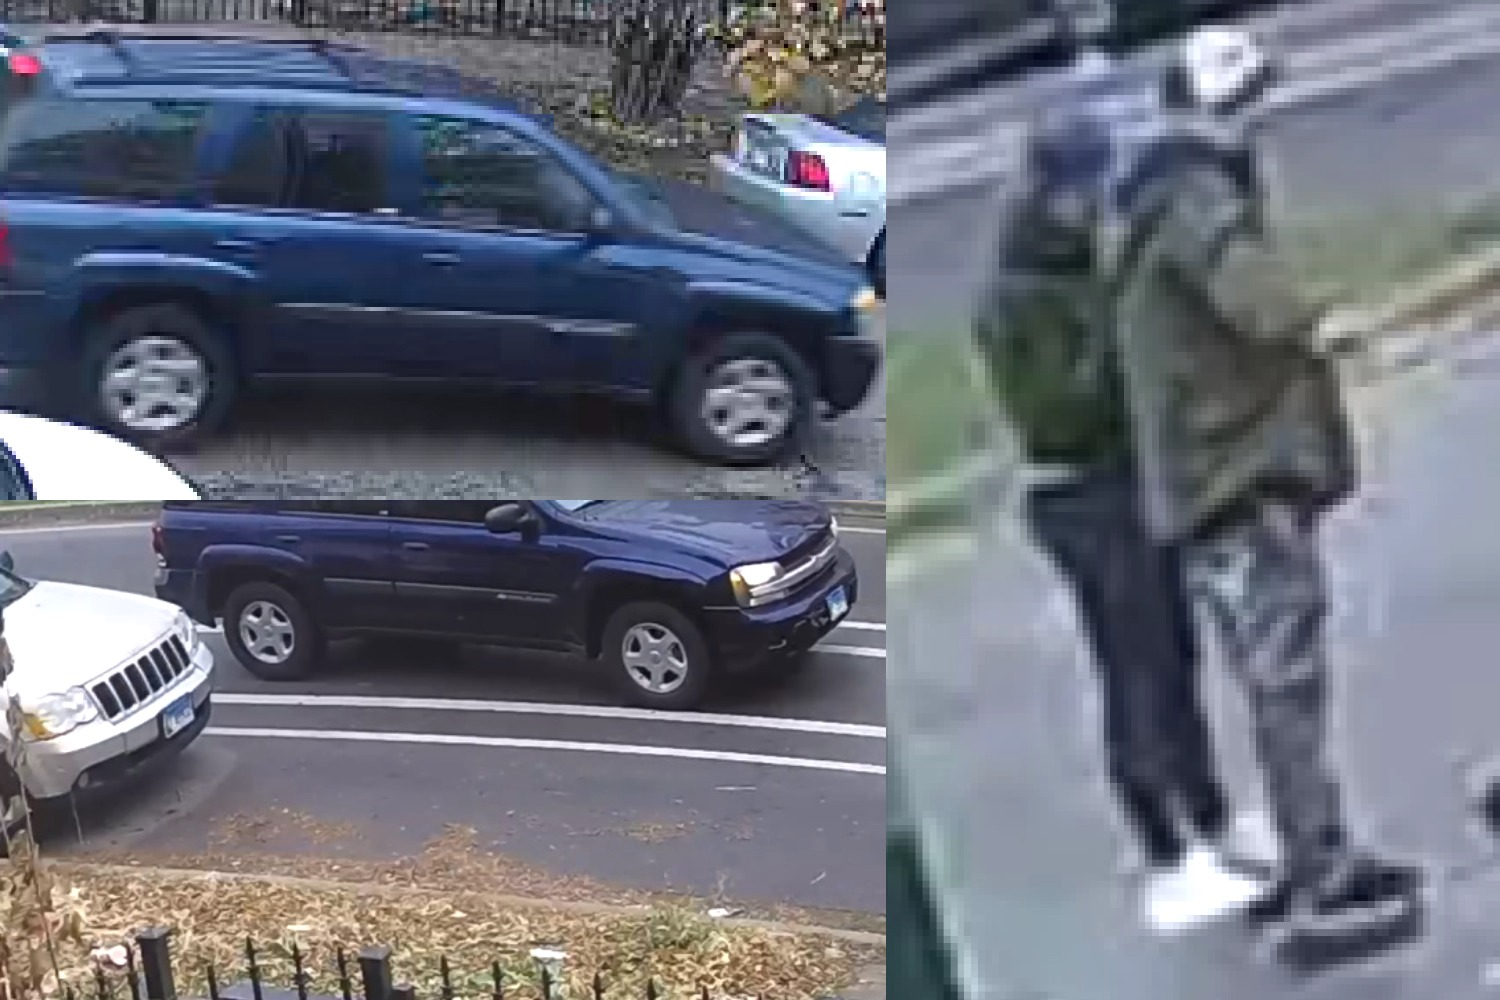 Police say this man is wanted for driving a blue Chevrolet Trailblazer and striking a man Dec. 6 in Logan Square.